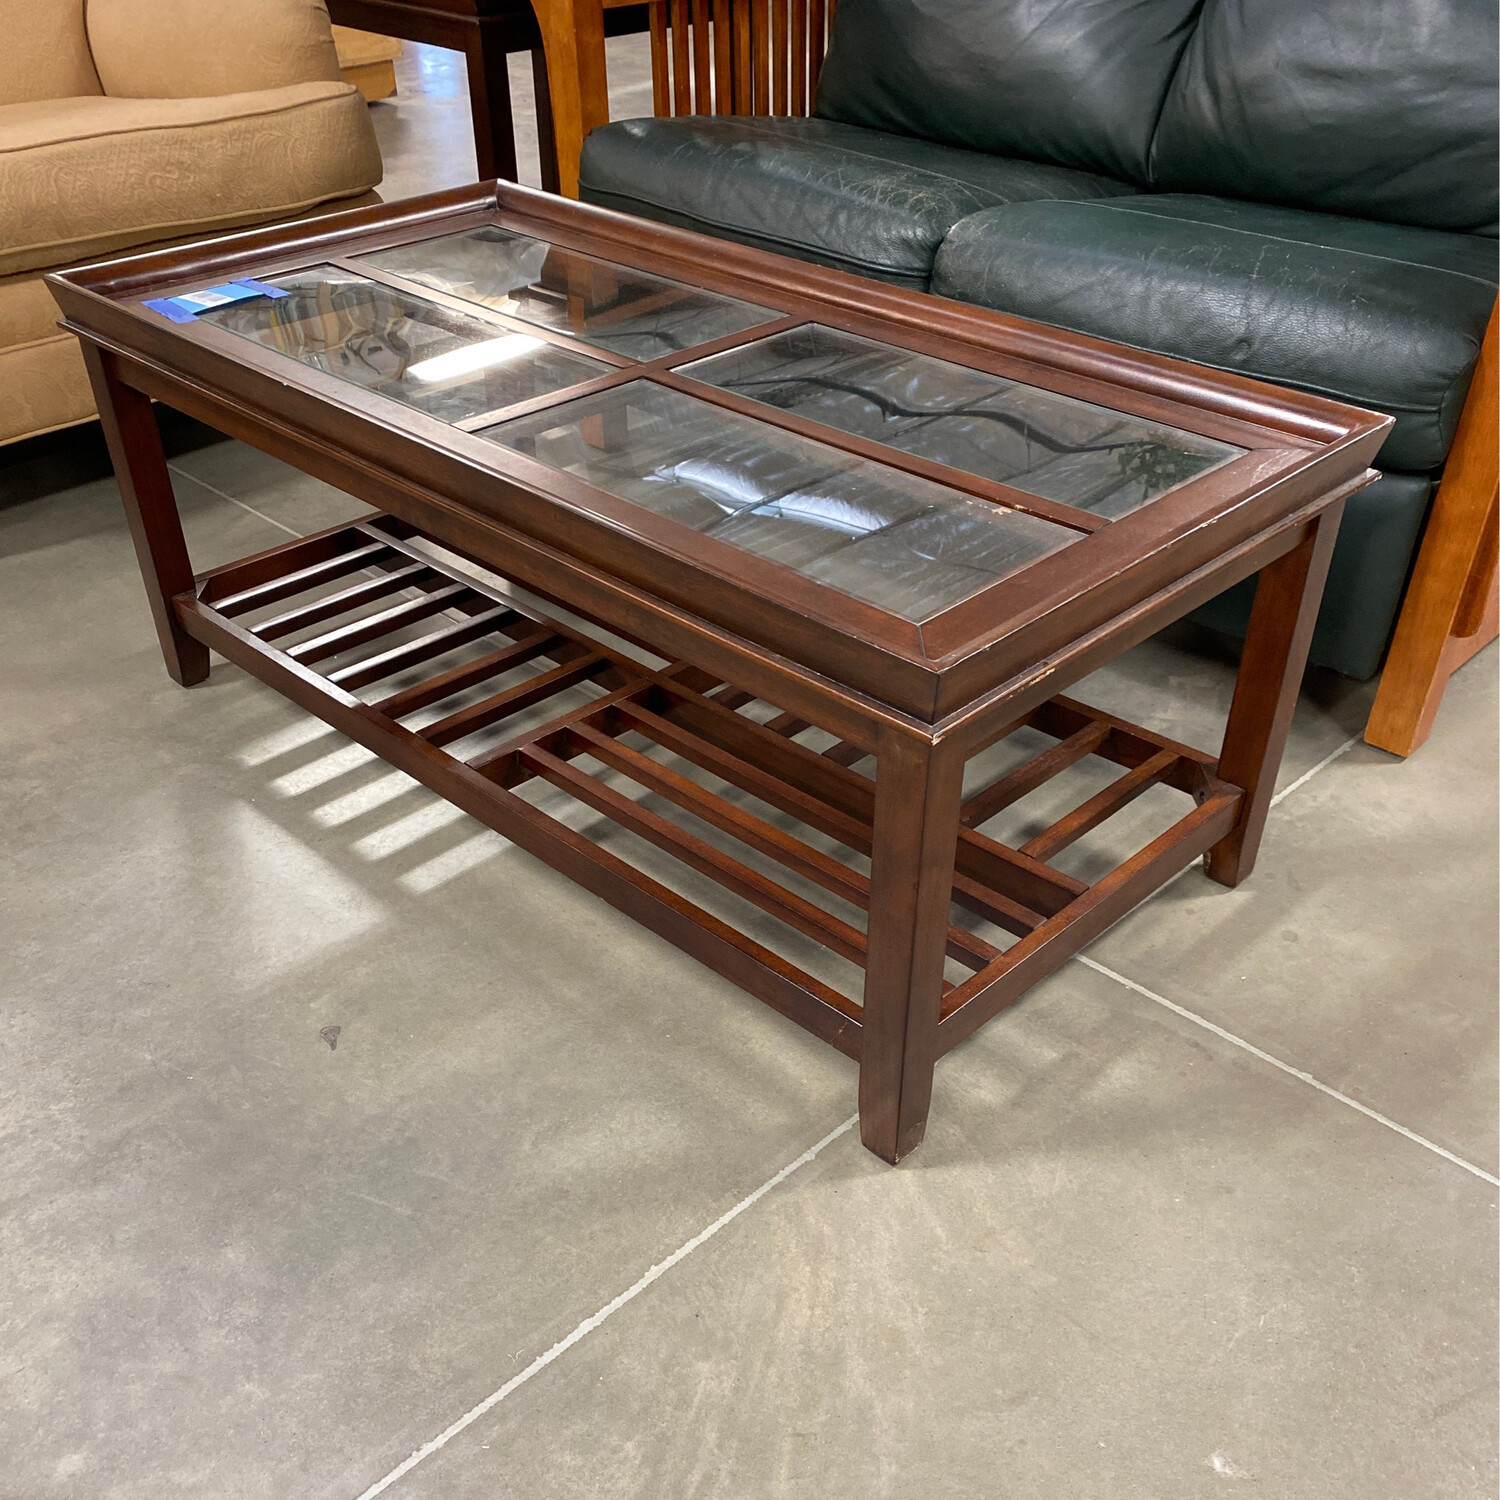 COFFE TABLE AND 2 SIDE TABLES